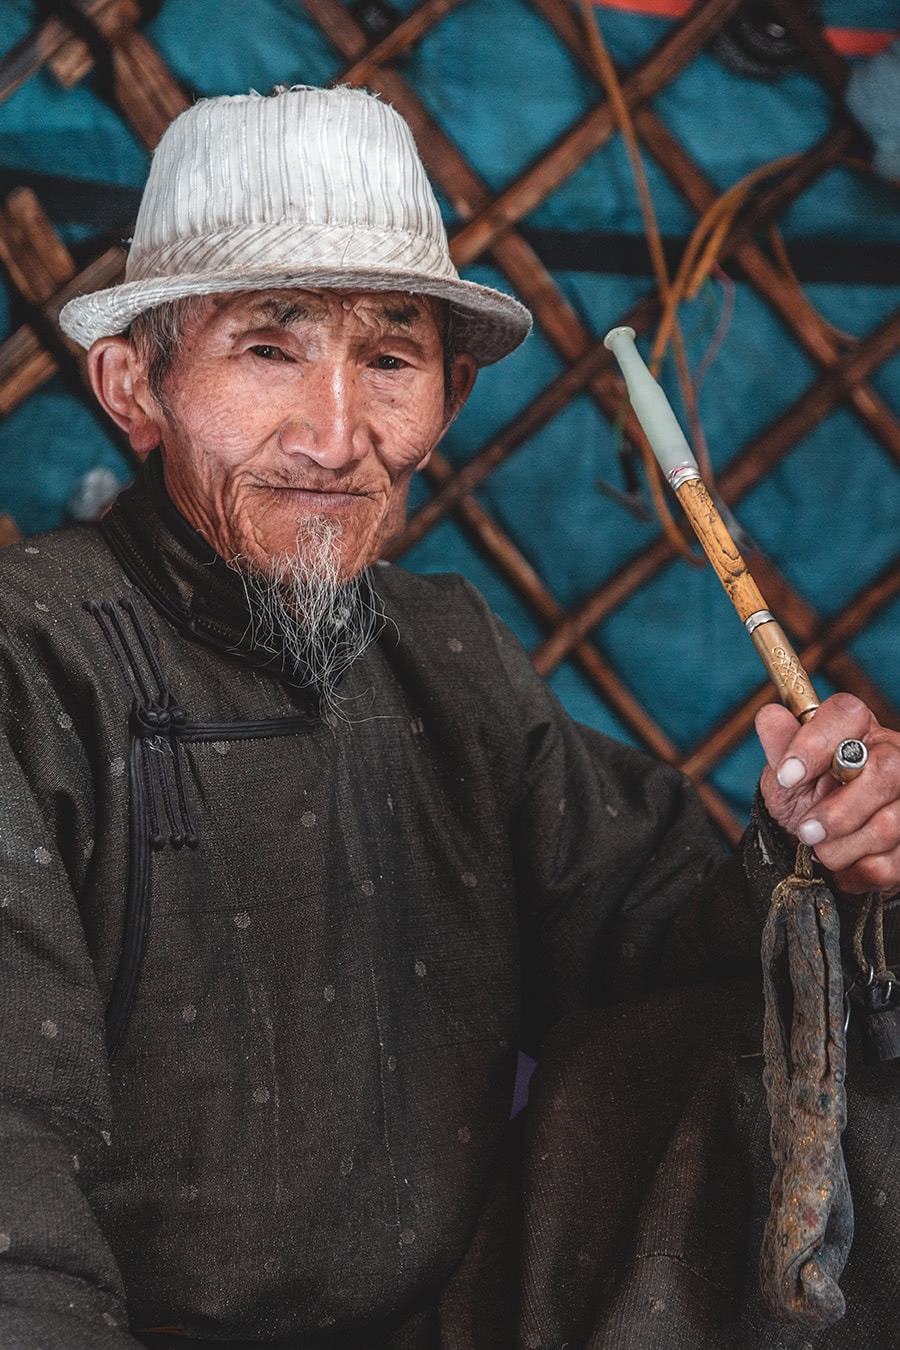 A Myangad Mongol man smokes in his ger in Altan Hokhii, Mongolia.